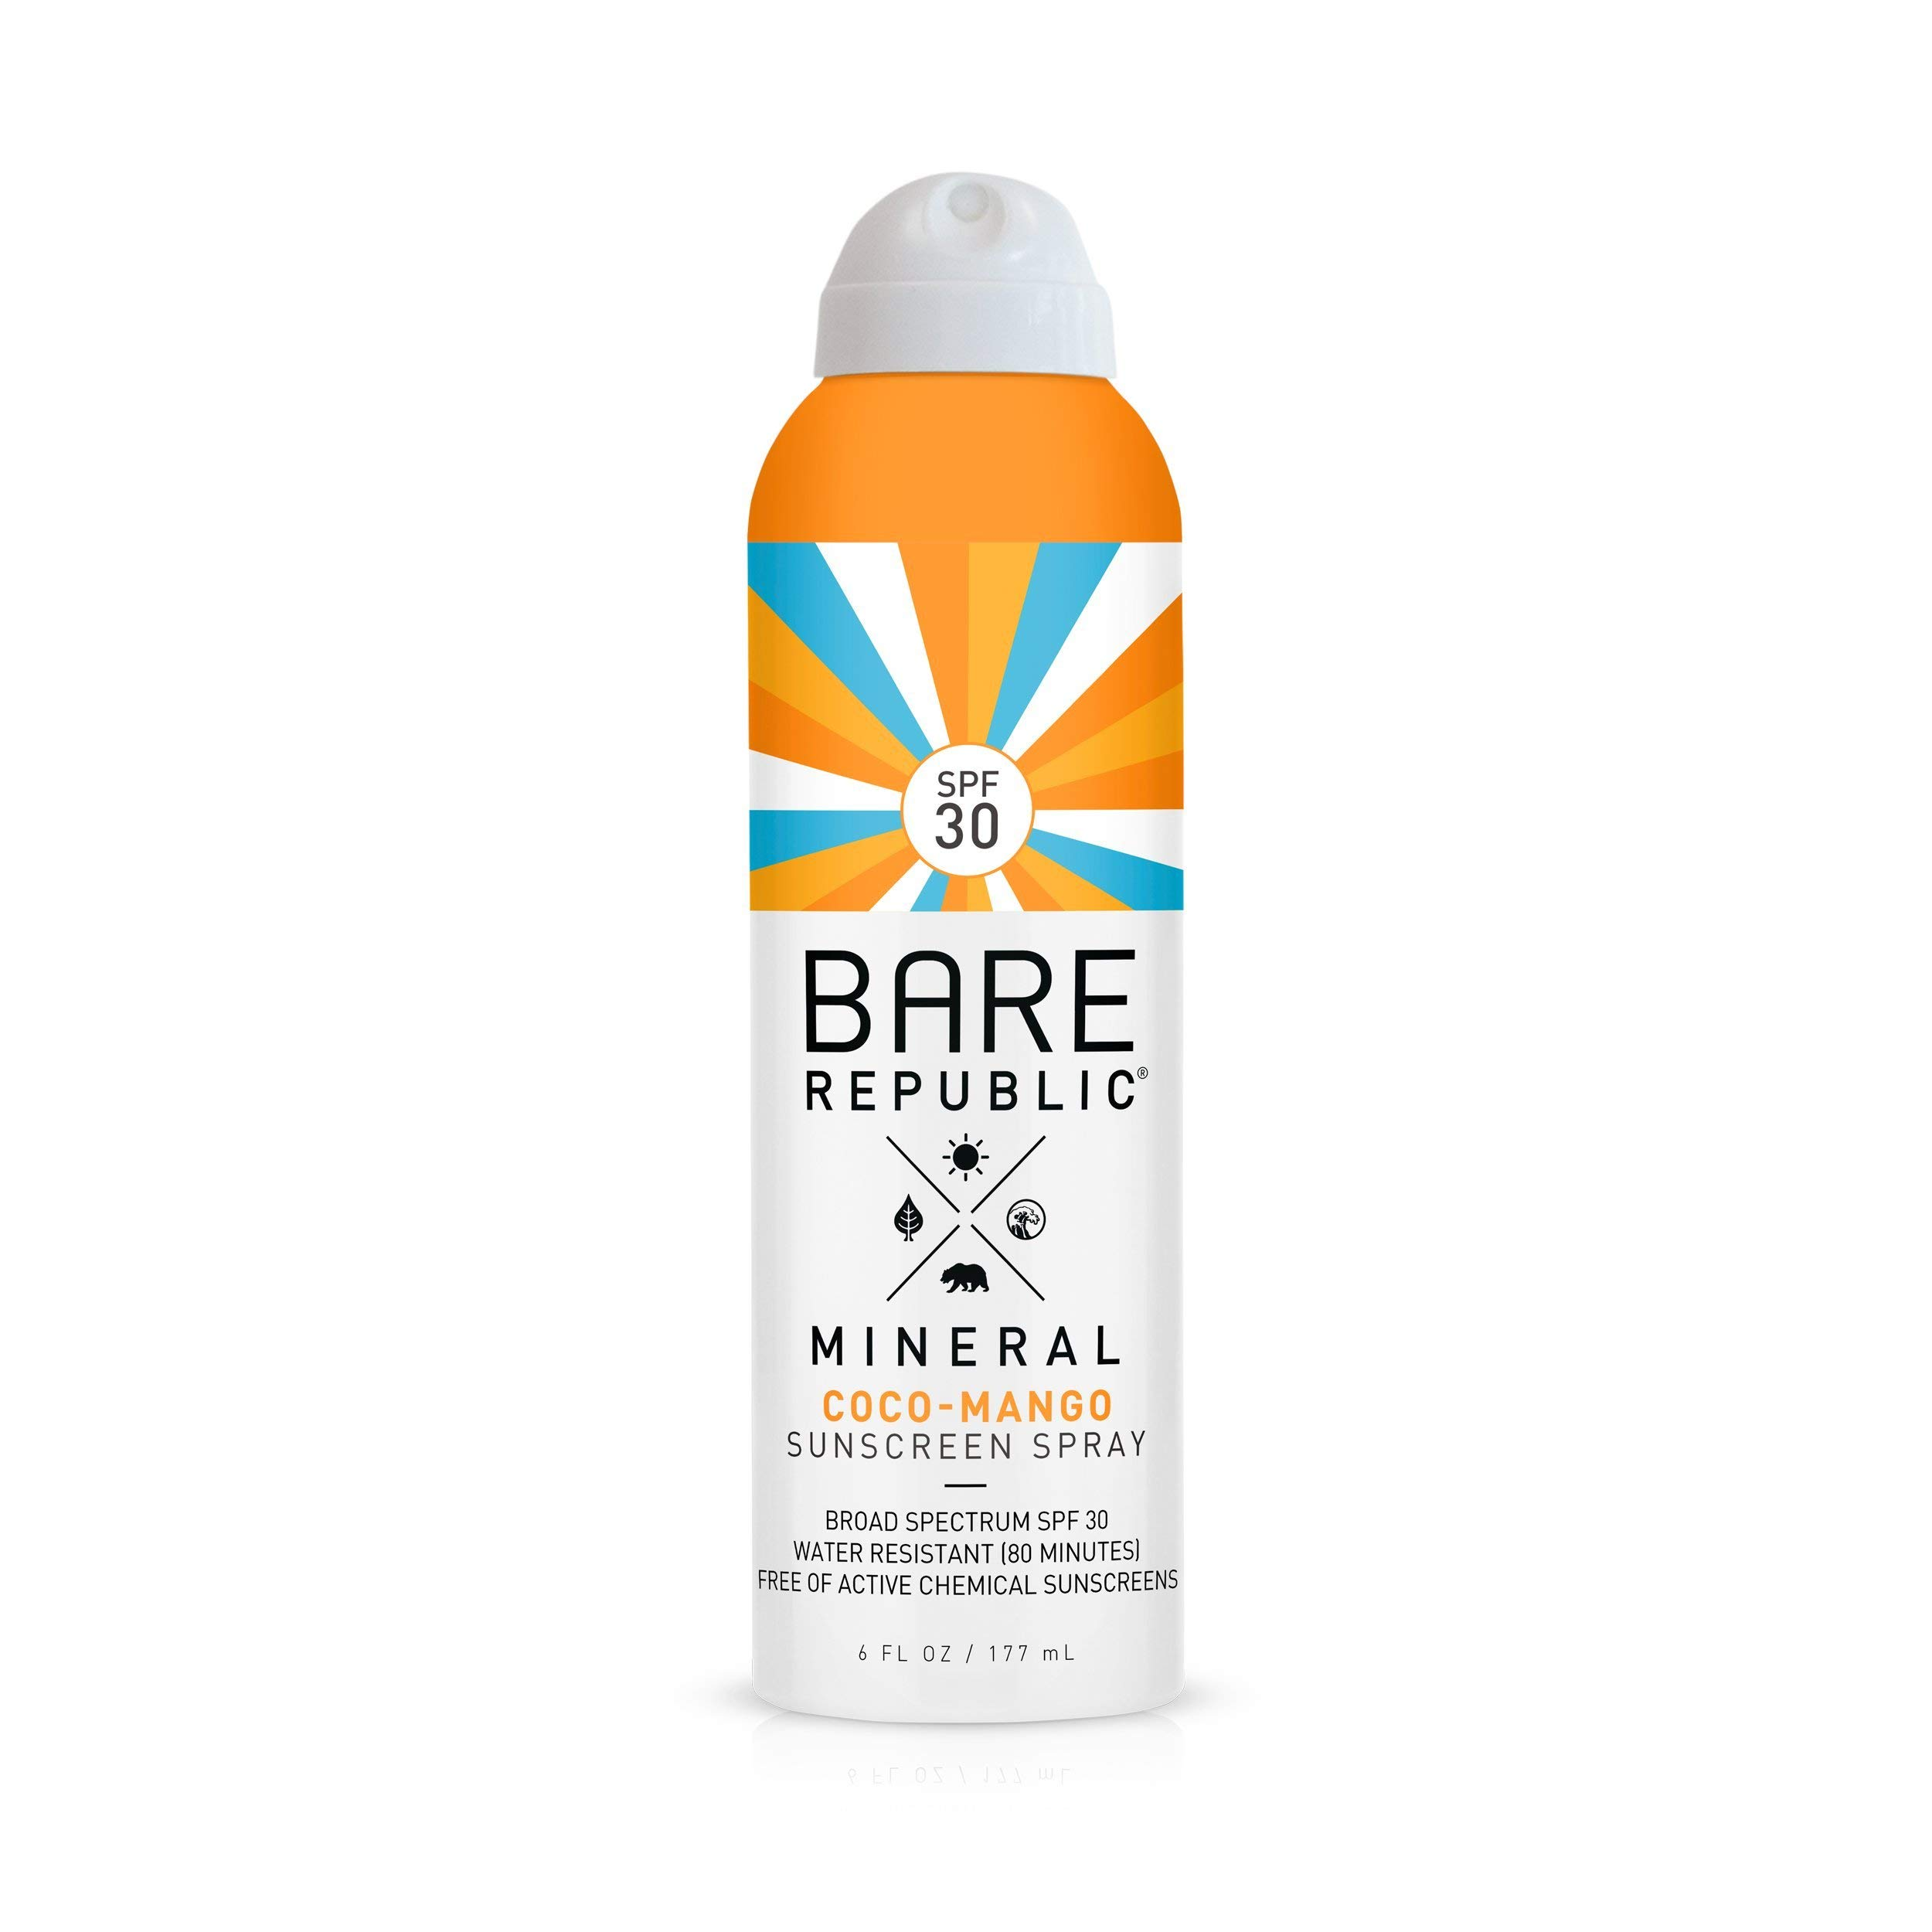 Bare Republic Mineral SPF 30 Sport Sunscreen Spray. Coconut-Mango Sheer and Strong Water-Resistant Sunscreen Spray, 6 ounces